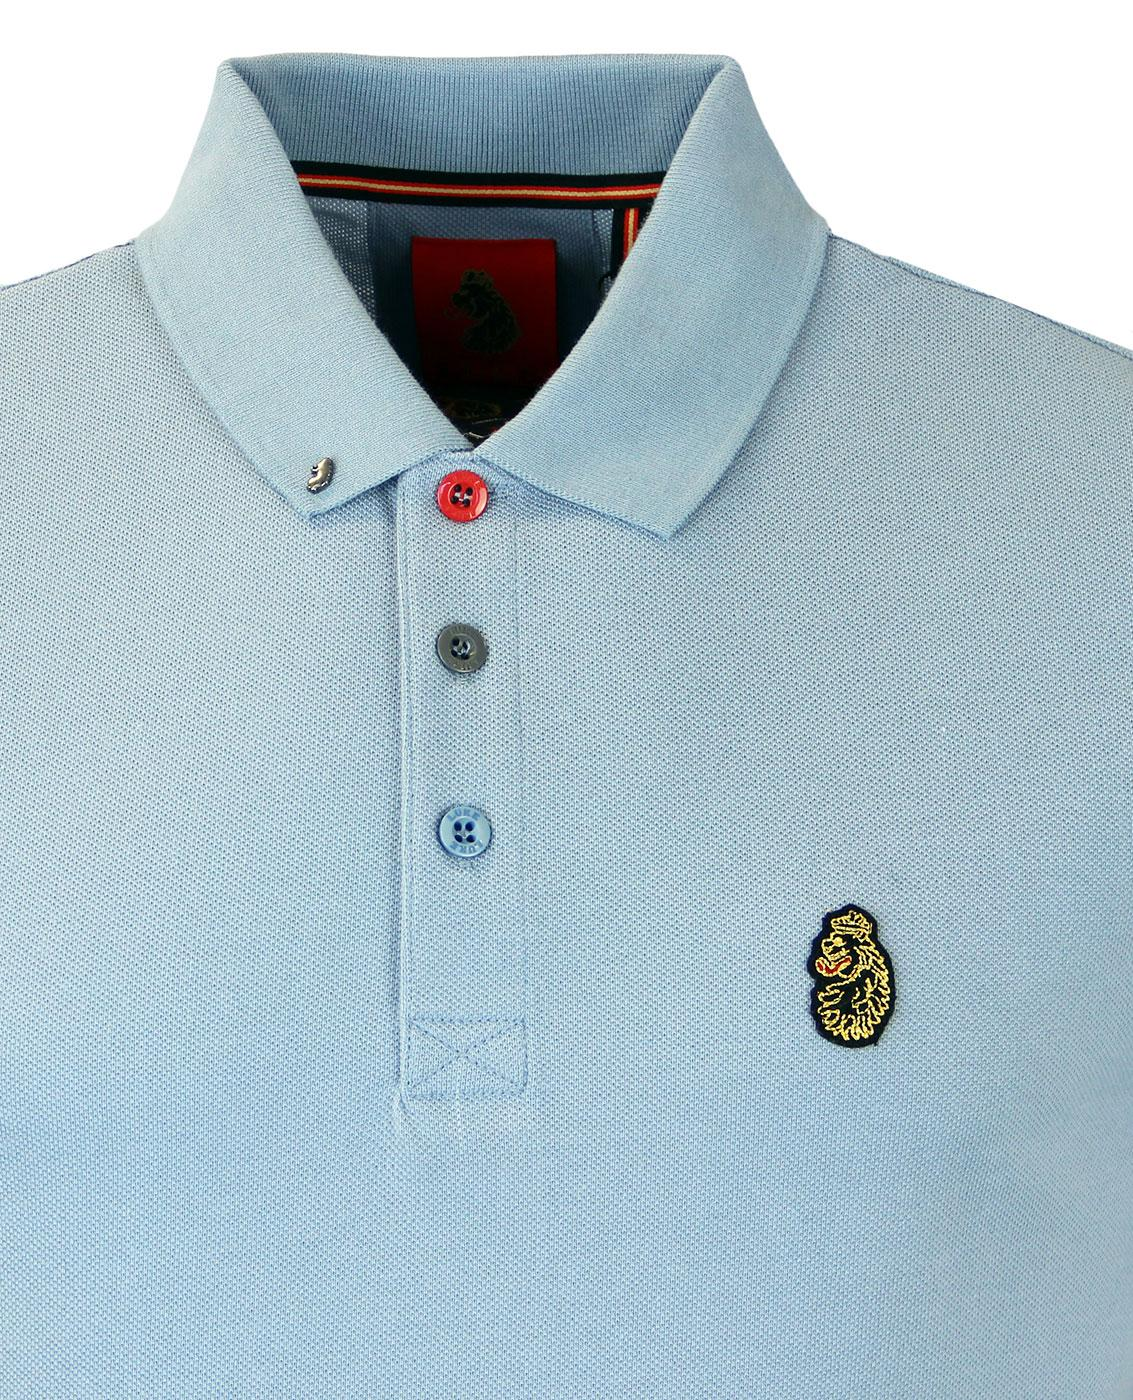 Mens LUKE 1977 Cotton Casual Short Sleeve Pique Polo Shirt Sizes from S to XXL